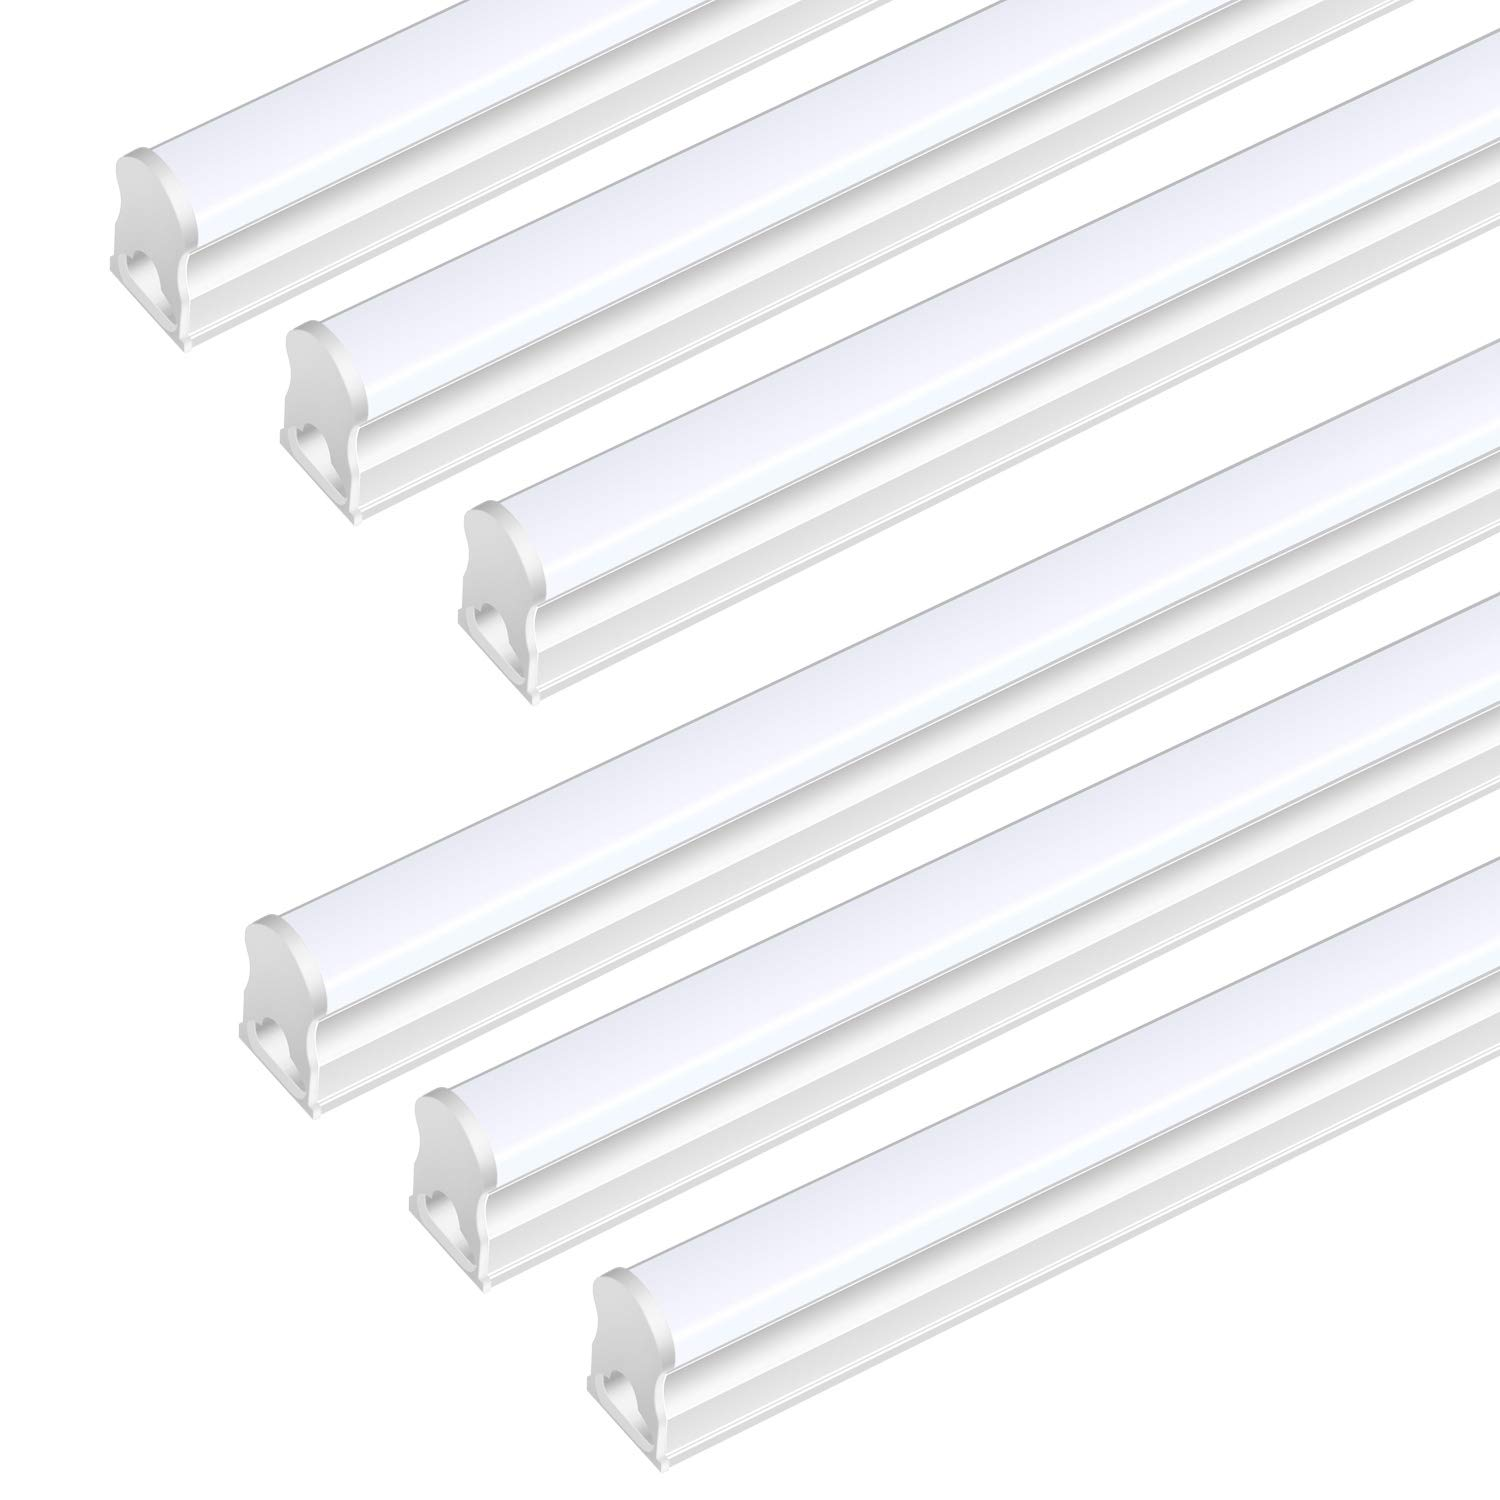 (Pack Of 6) DIKAIDA T5 Led Integrated Single Fixture, 4FT, 2000lm, 6500K(Super Bright White), 20W, Led Shop Lights with built-in On/Off Switch for Garage, Storage Area, Basement, Under Cabinet, Office